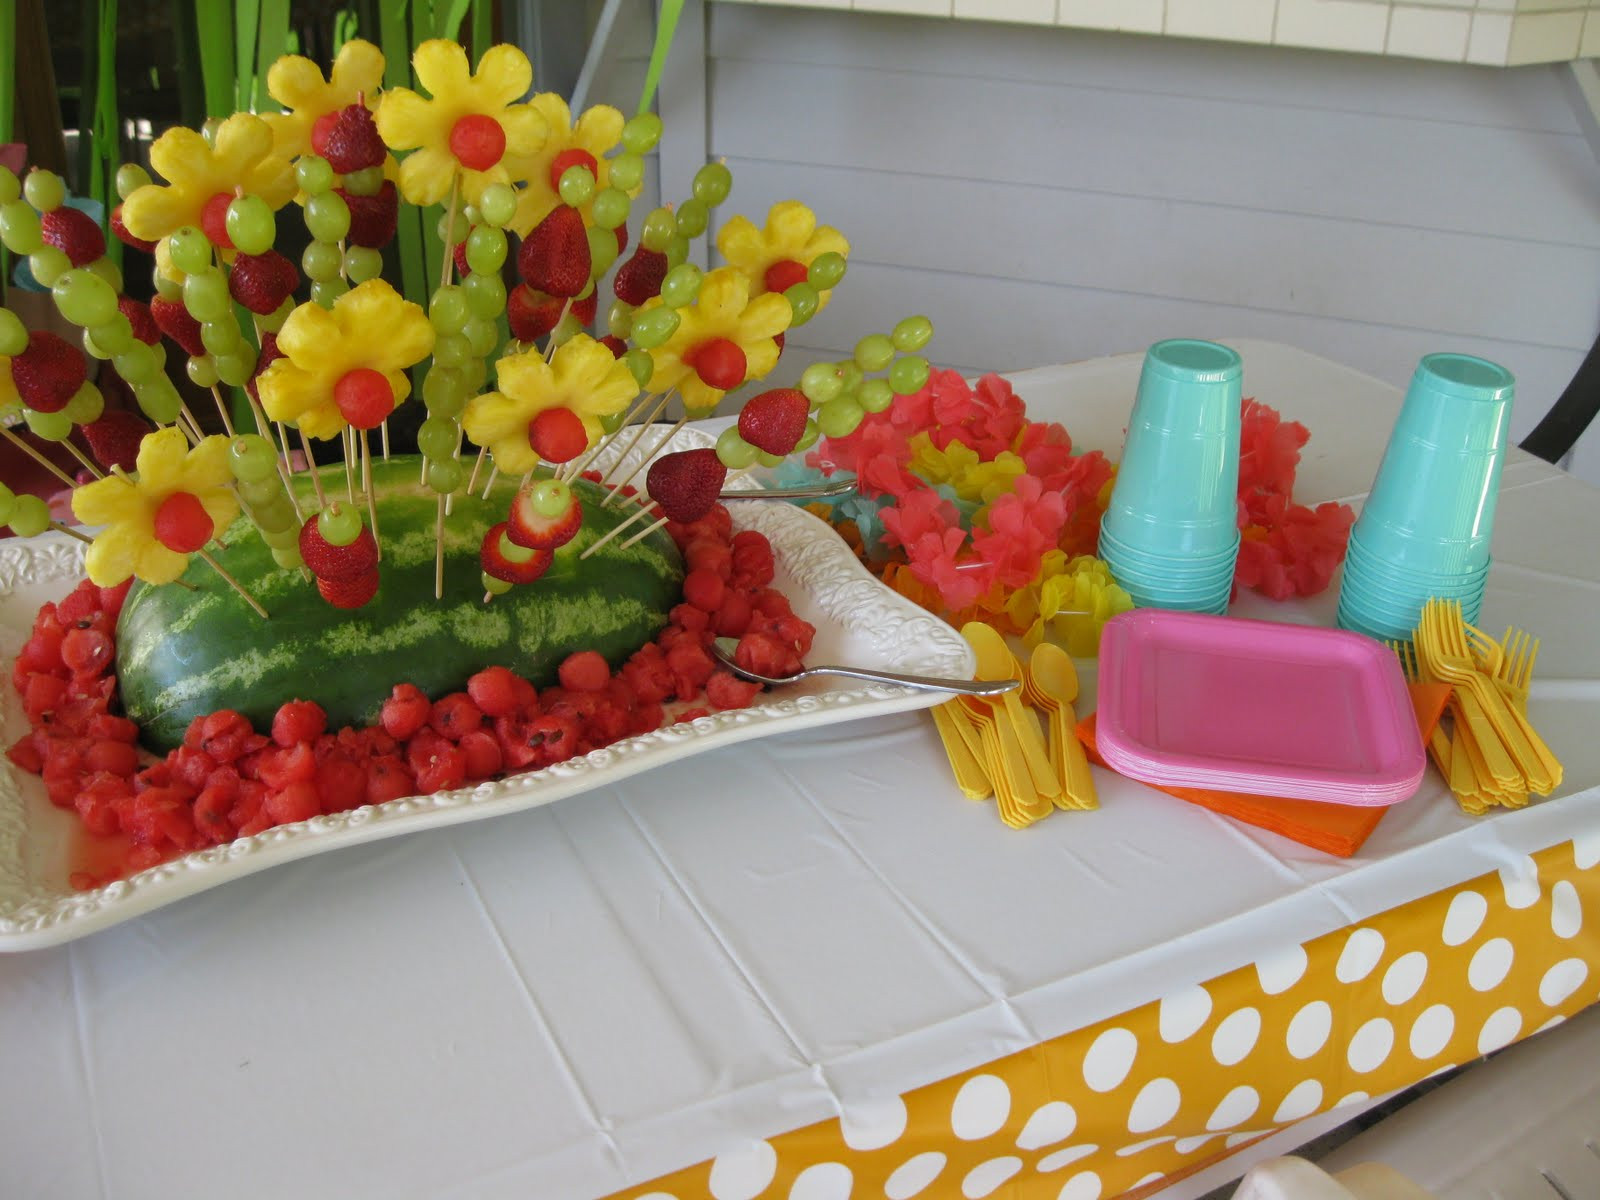 Best ideas about Luau Birthday Party Ideas . Save or Pin Sweet Shoppe Girly Luau Birthday Party Now.